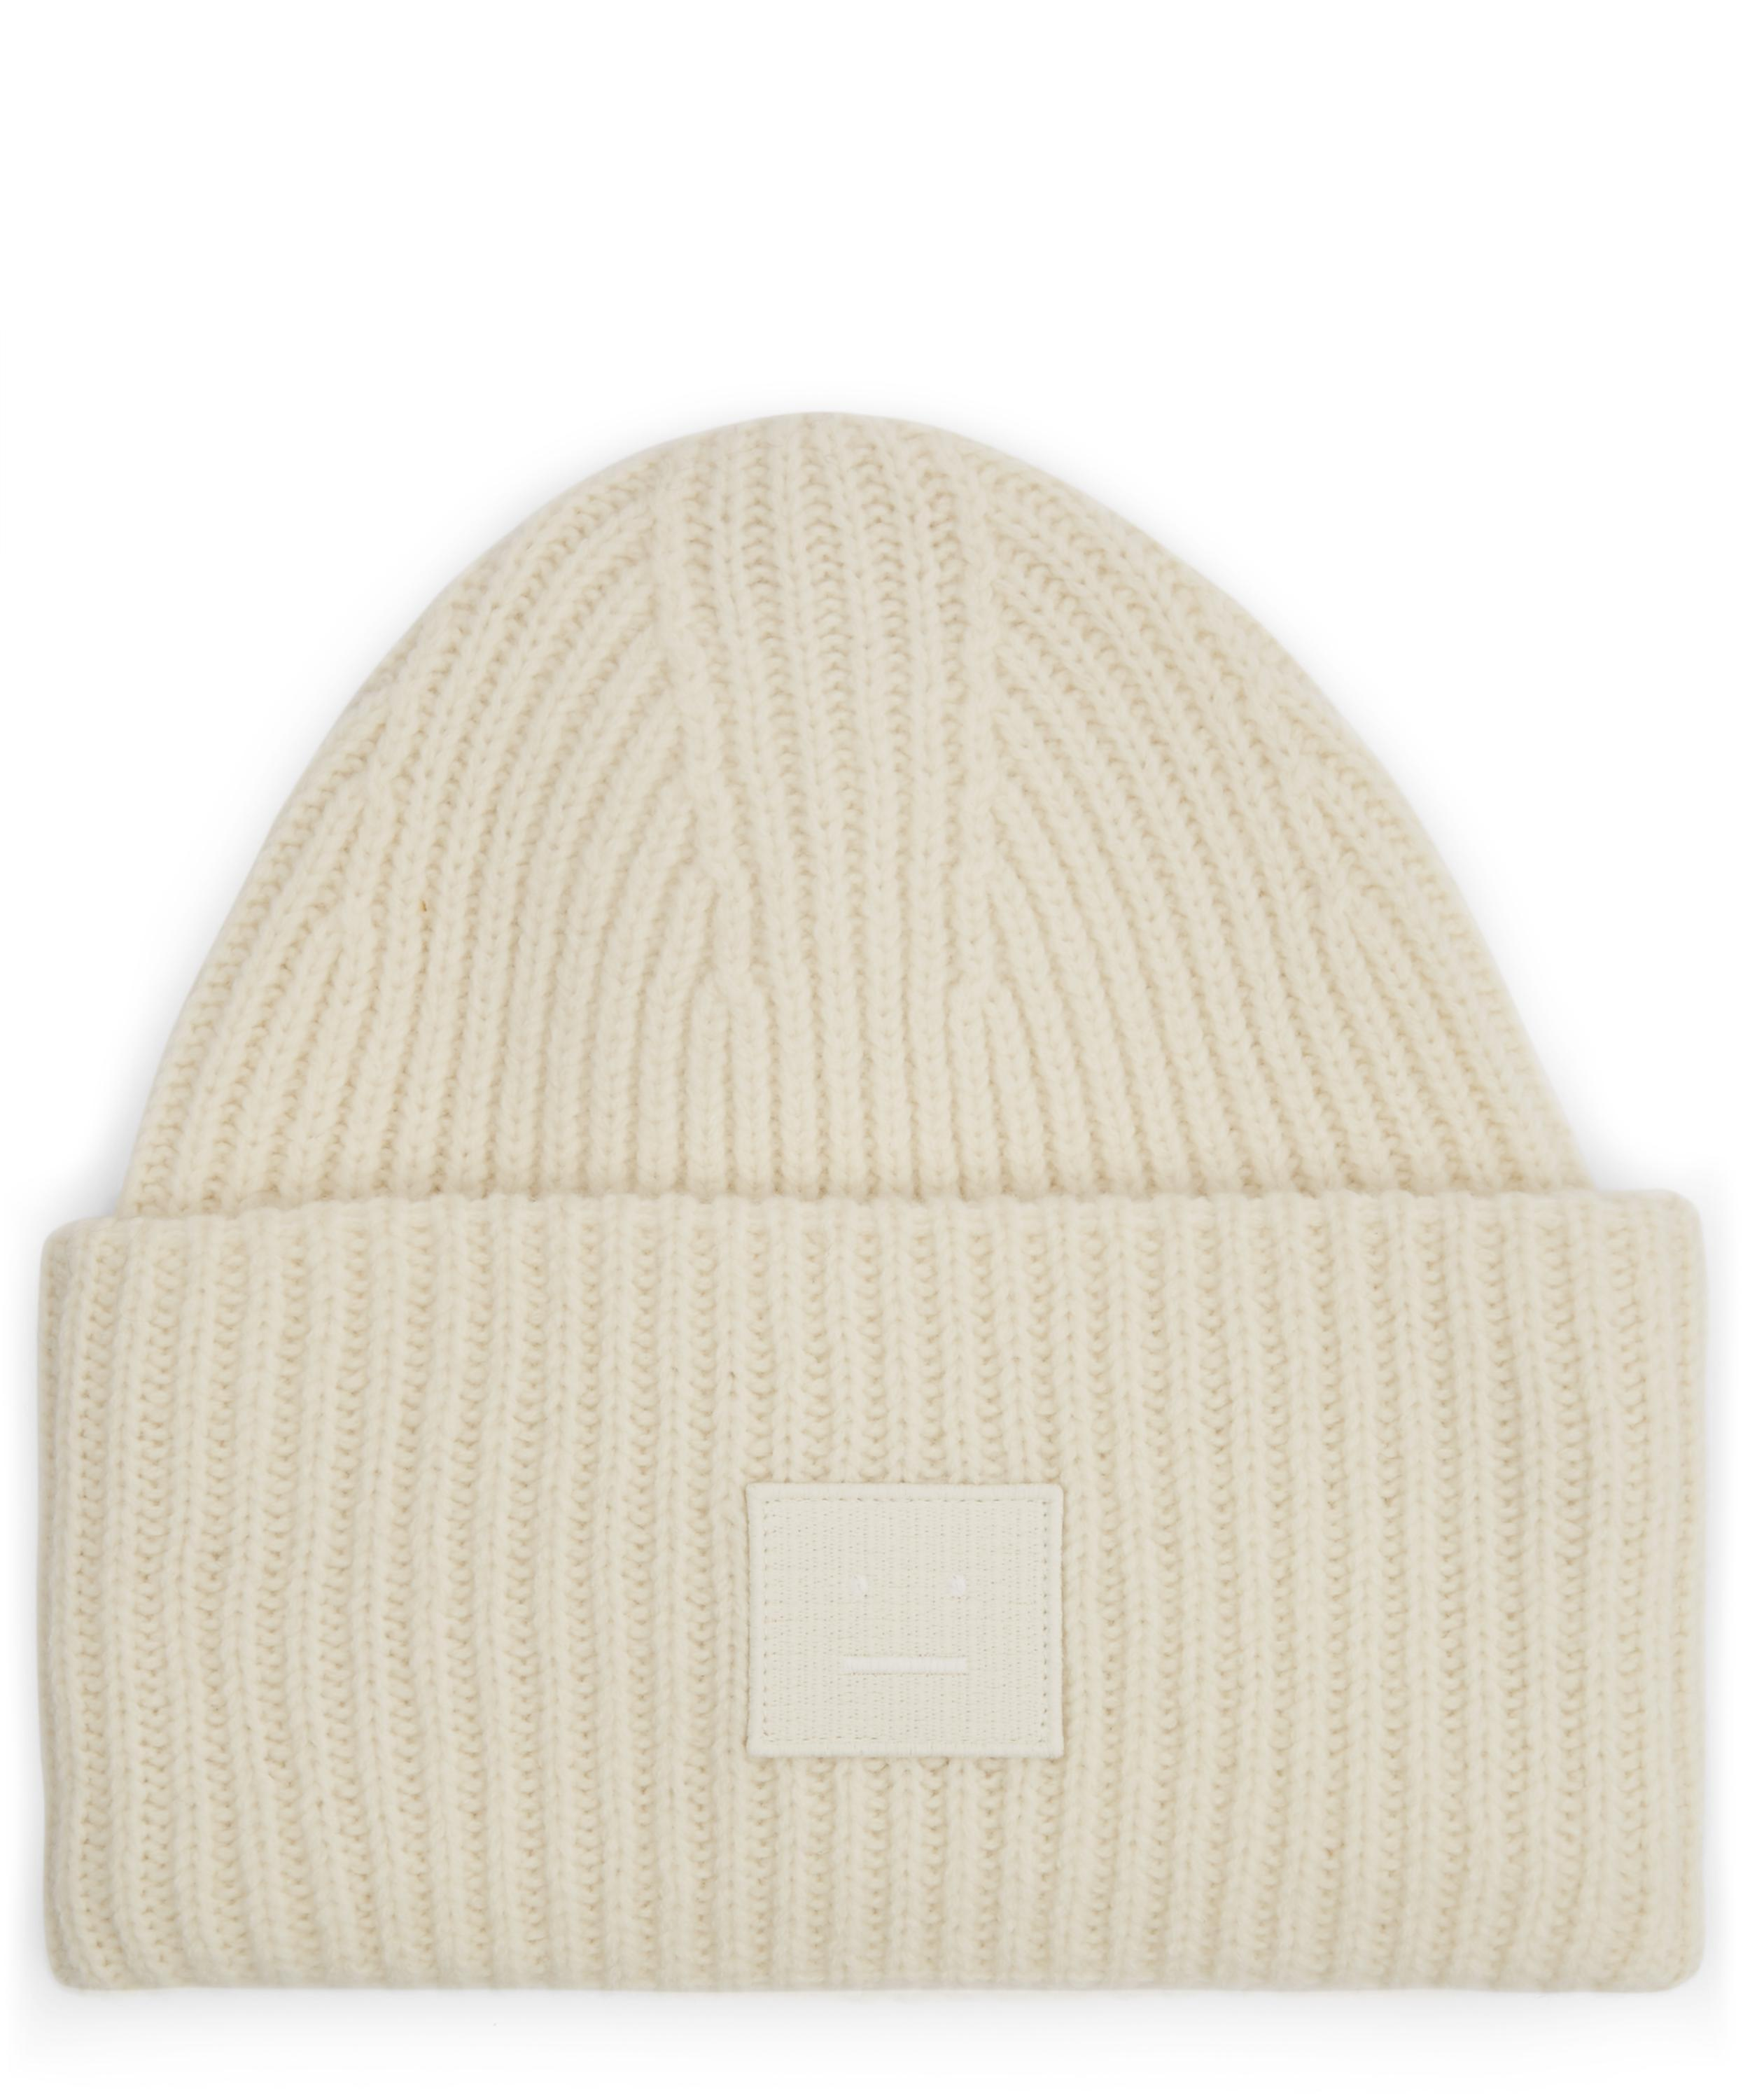 9fb568c84b7ad7 Lyst - Acne Studios Pansy Face Wool Beanie Hat in White